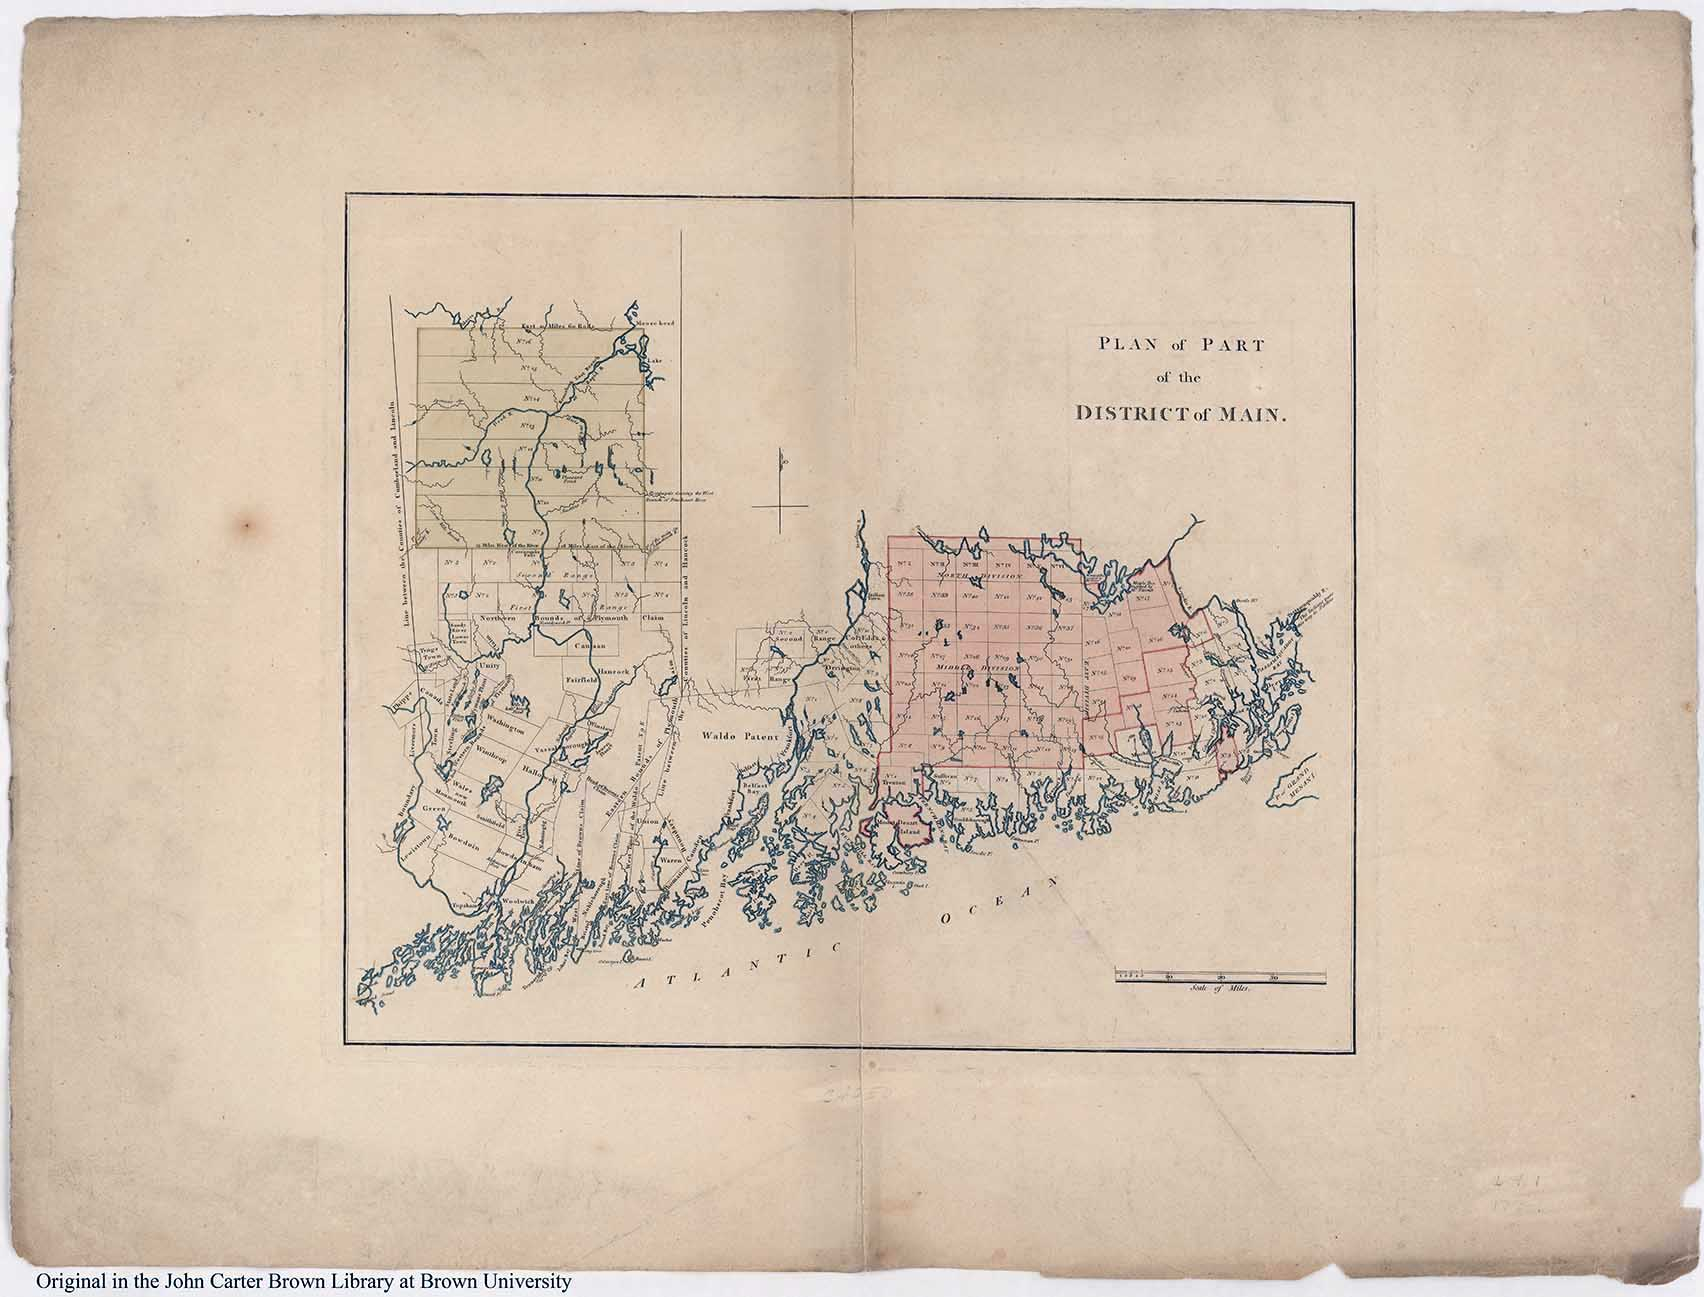 Fig. 4.  Plan of Part of the District of Main  (n.p, n.d.). Courtesy of the John Carter Brown Library, Brown University, Providence, R.I. (Cabinet Cb793 2.1). https://www.brown.edu/academics/libraries/john-carter-brown/jcb-online/image-collections/map-collection